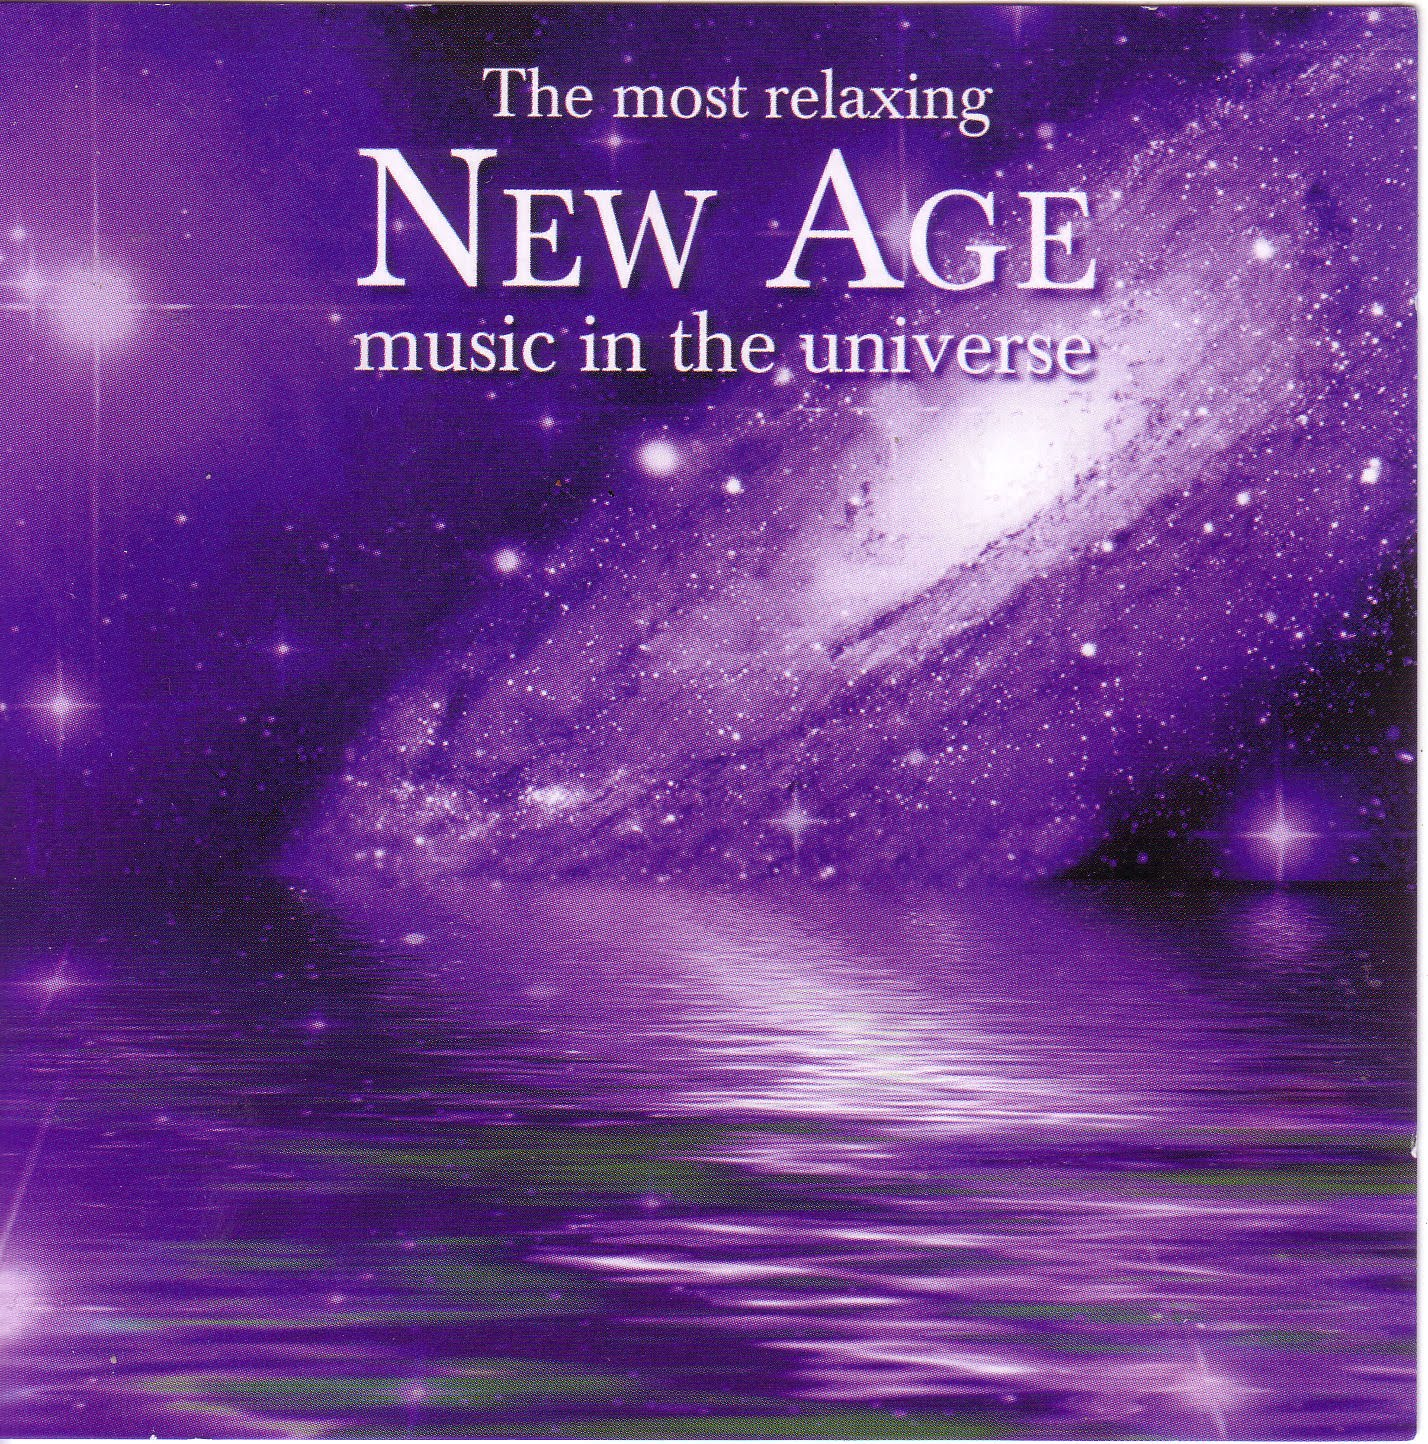 http://1.bp.blogspot.com/__68M6Sx1FDY/S_aUZyb5e6I/AAAAAAAAAEc/O2u2AWZNIcw/s1600/000-va--the_most_relaxing_new_age_music_in_the_universe-2cd-2005-(front).jpg